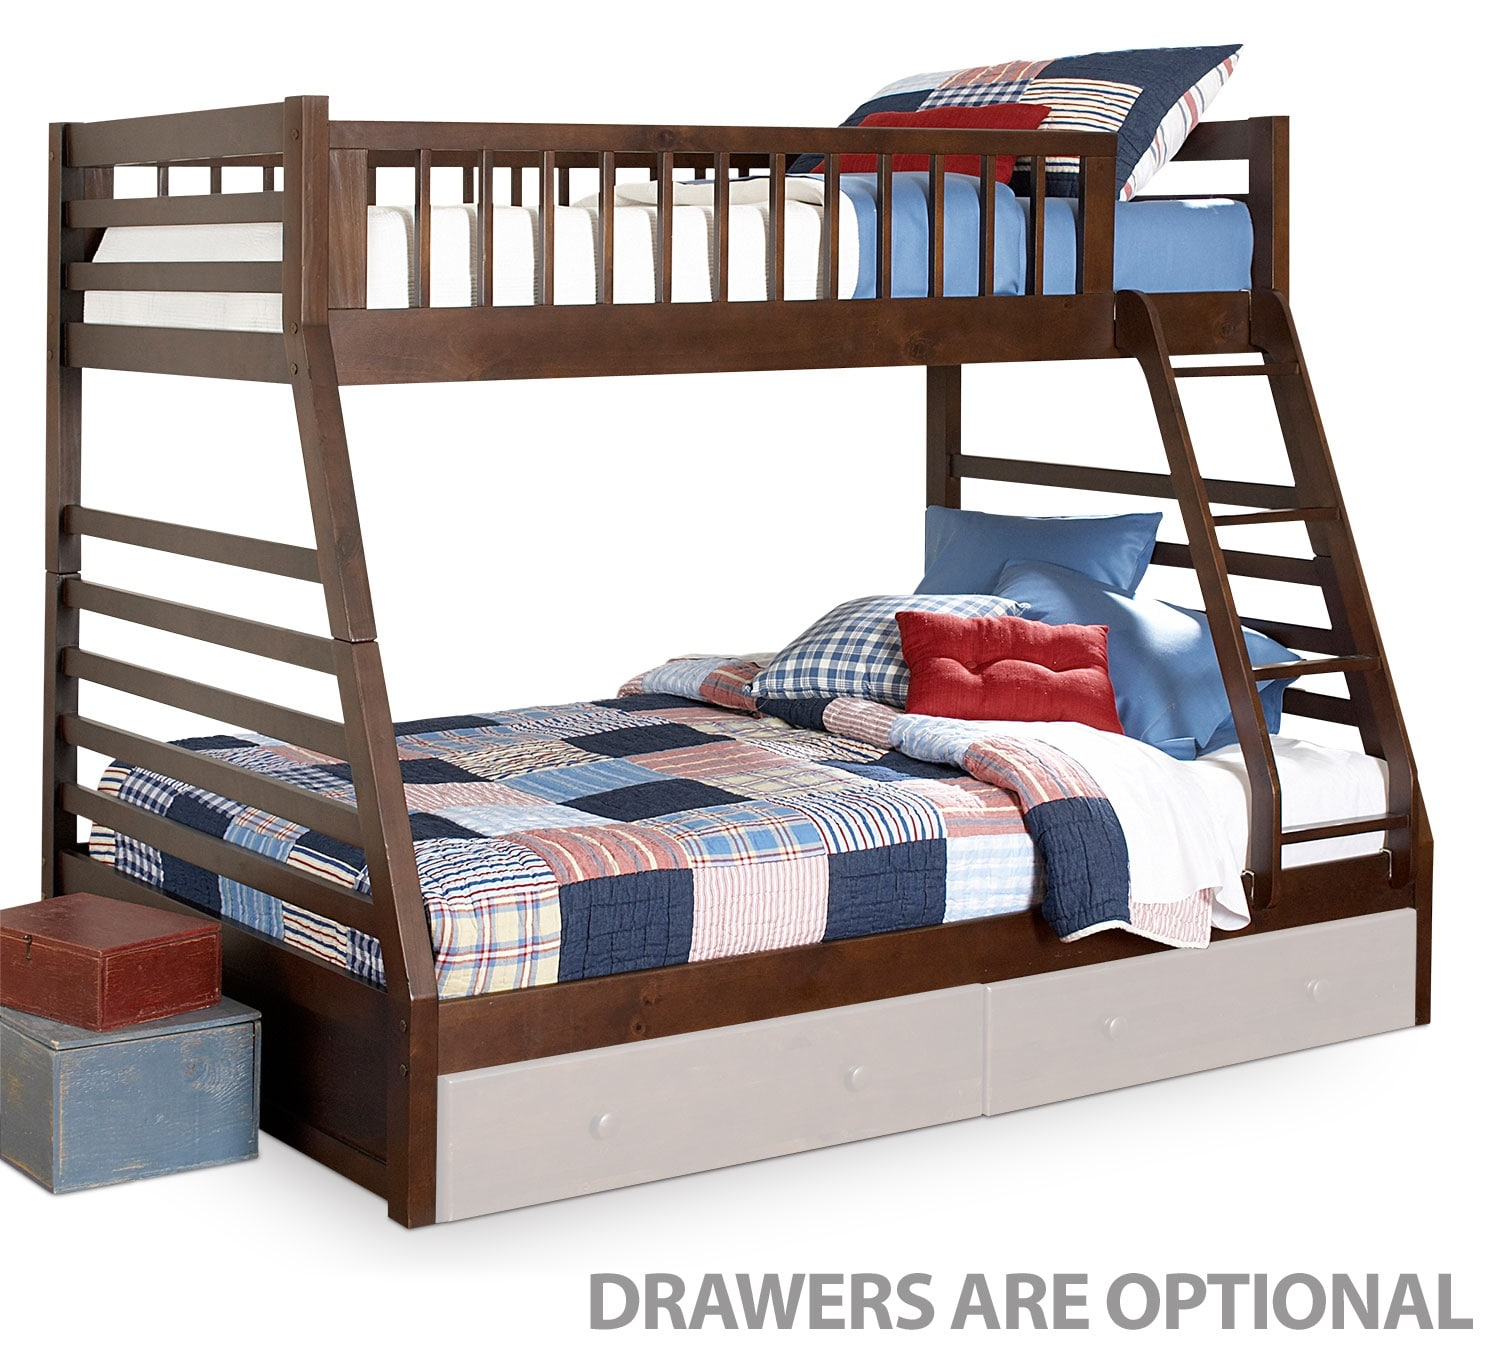 Kids Furniture - Starship Bunk Bed Set - Chocolate Cherry